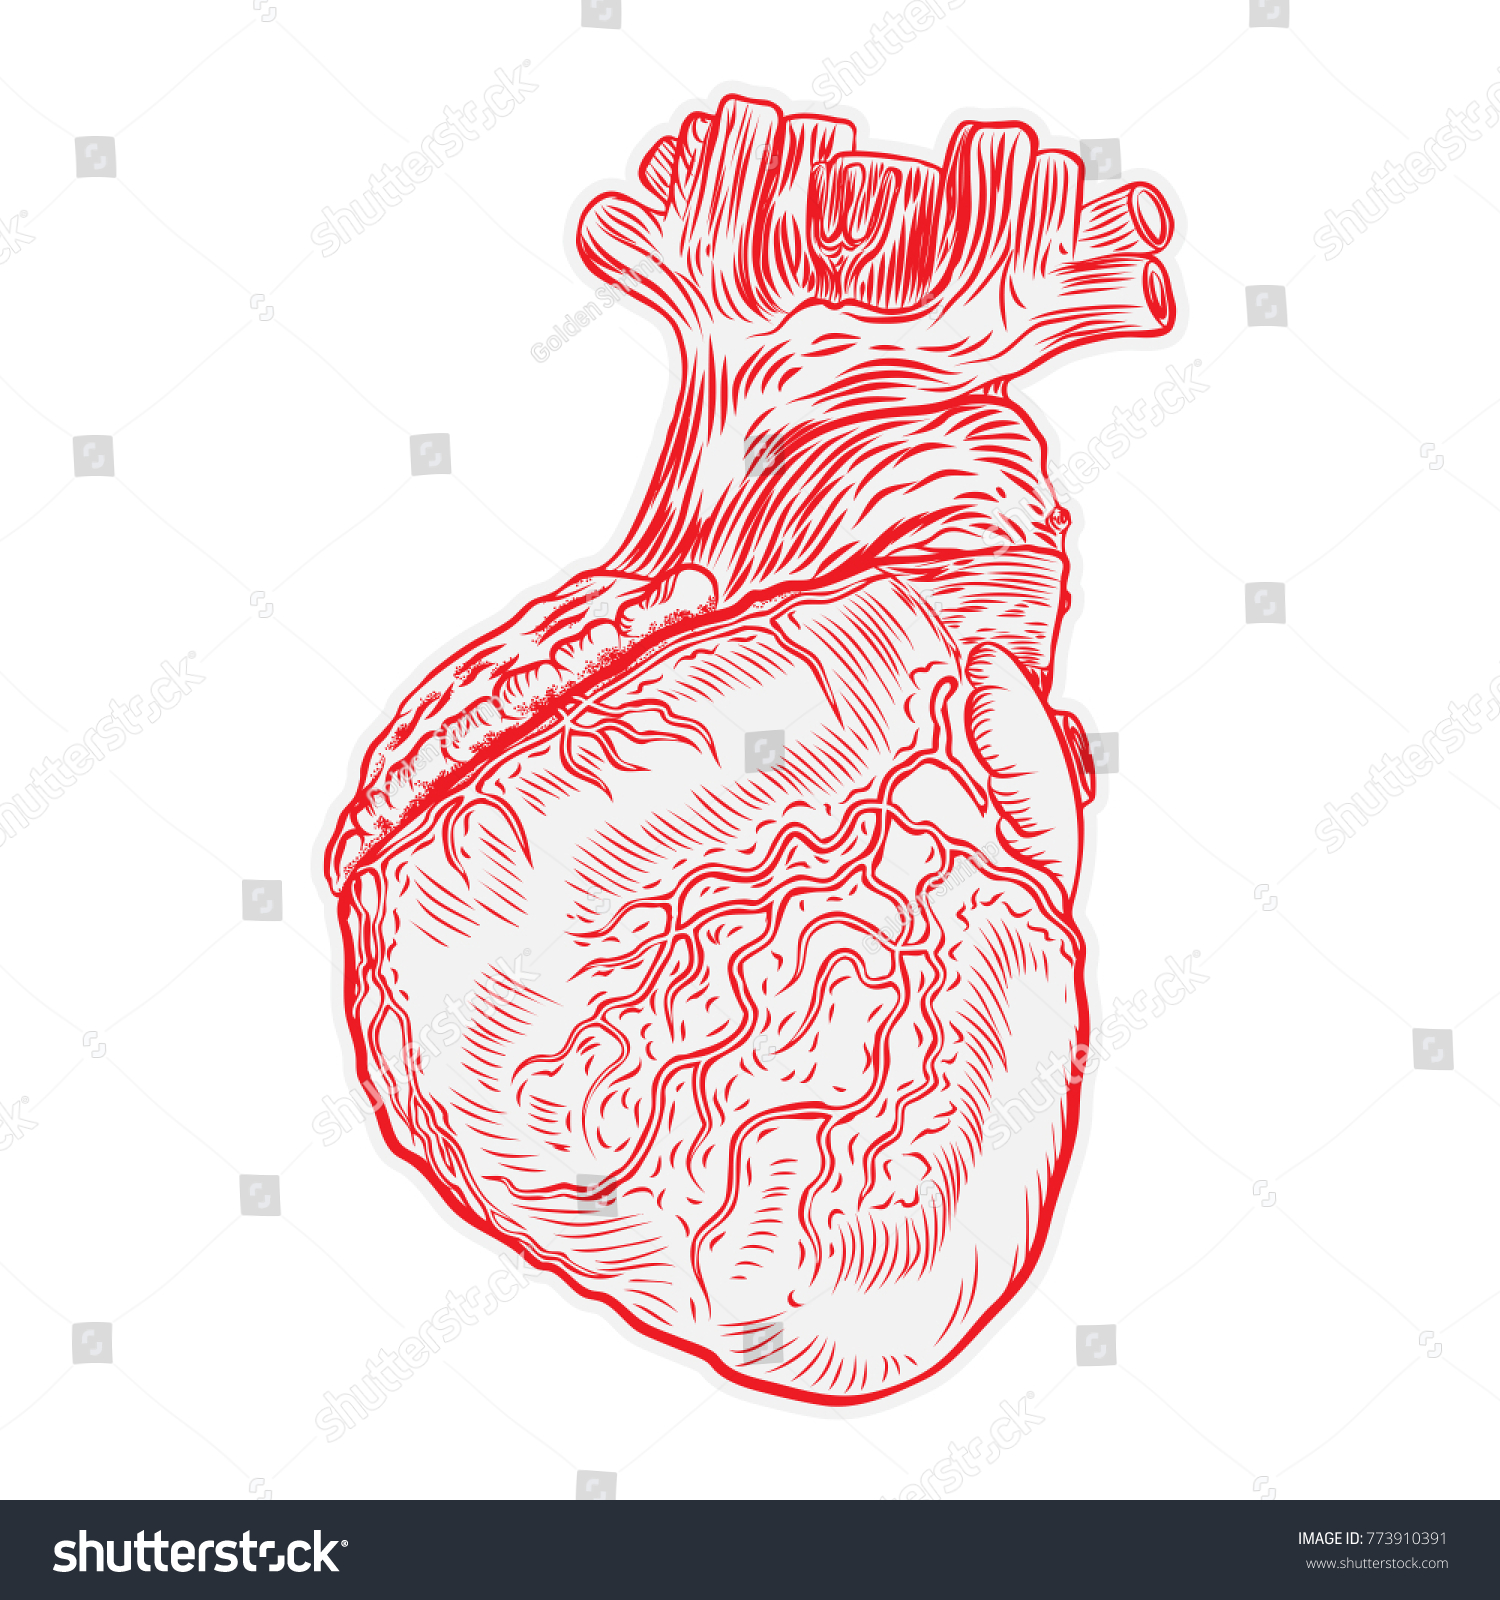 Heart Hand Drawn Isolated On White Stock Vector 773910391 - Shutterstock